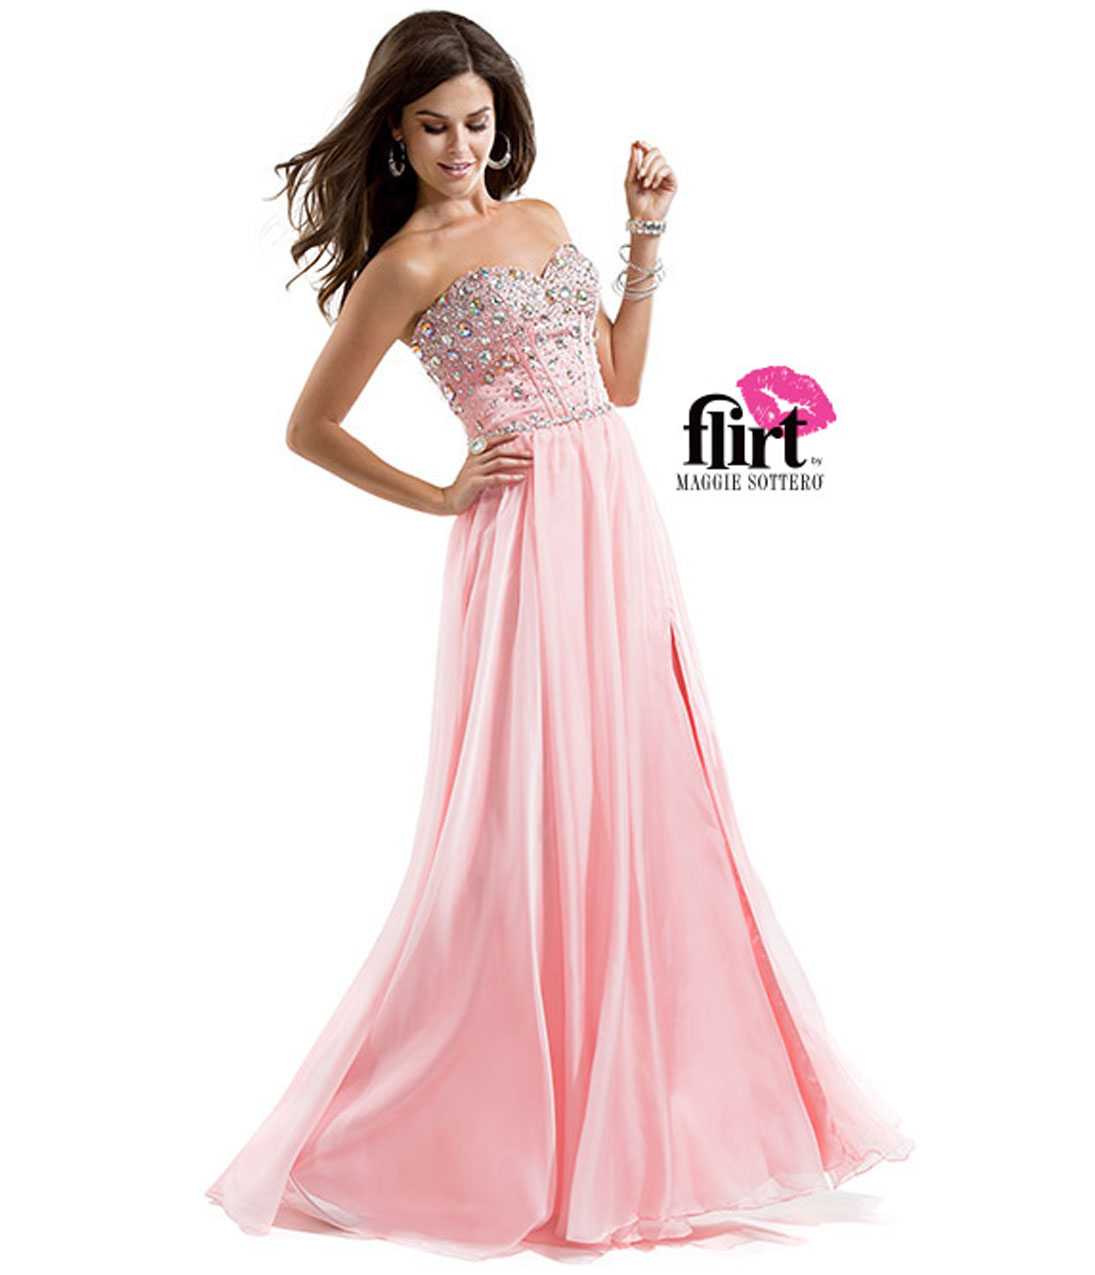 Flirt by maggie sottero prom dresses eligent prom dresses for Immediate resource wedding dresses